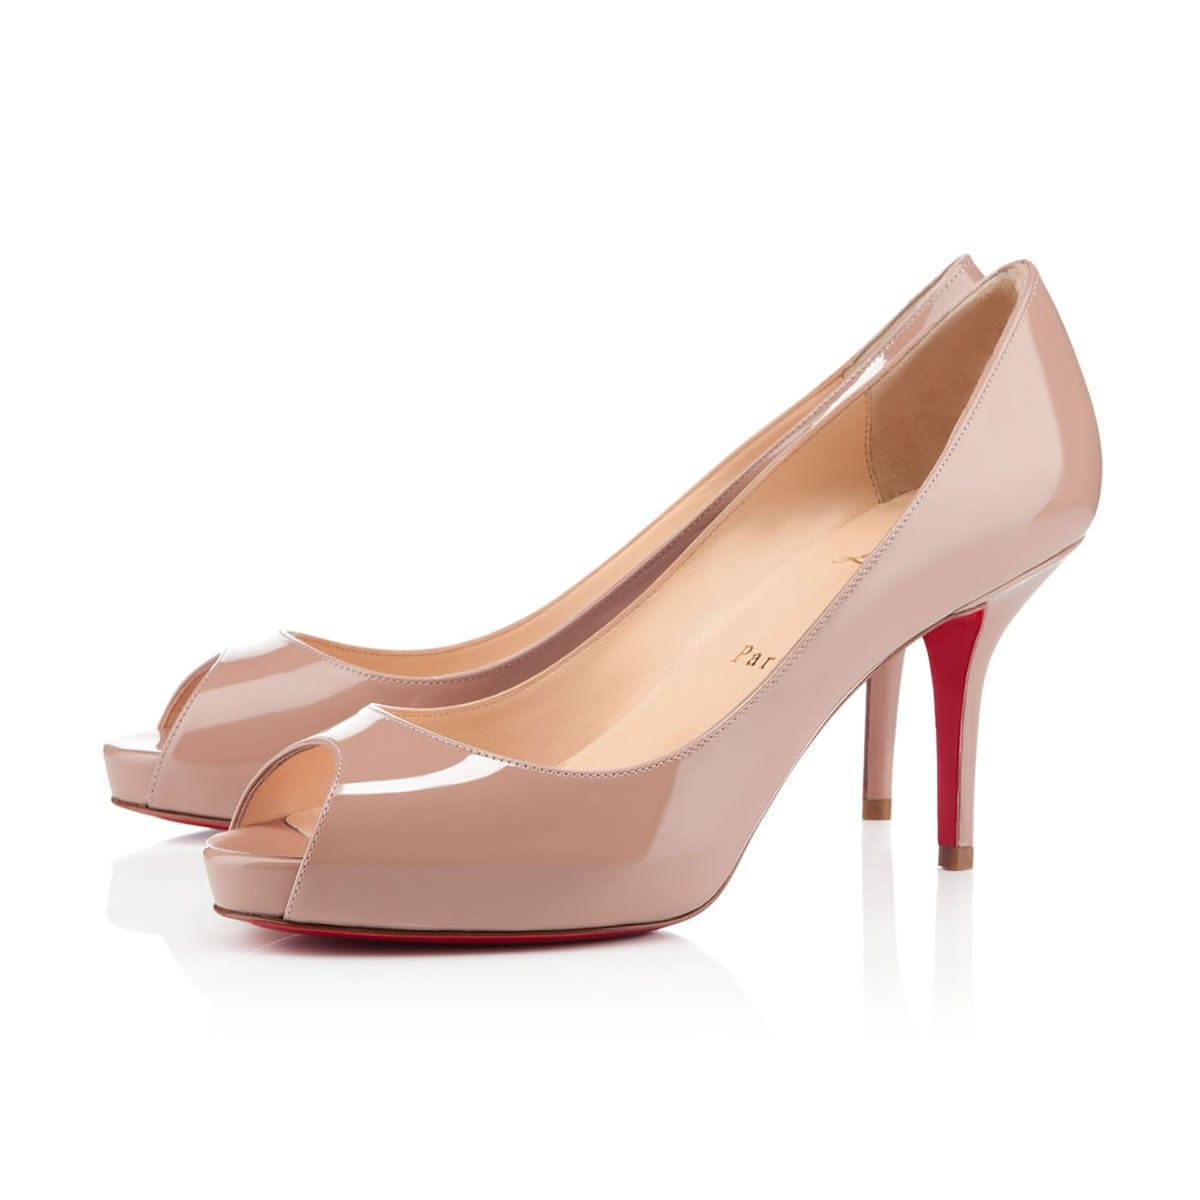 wtH104S Christian Louboutin Simple 80mm Pumps Nude Clearance